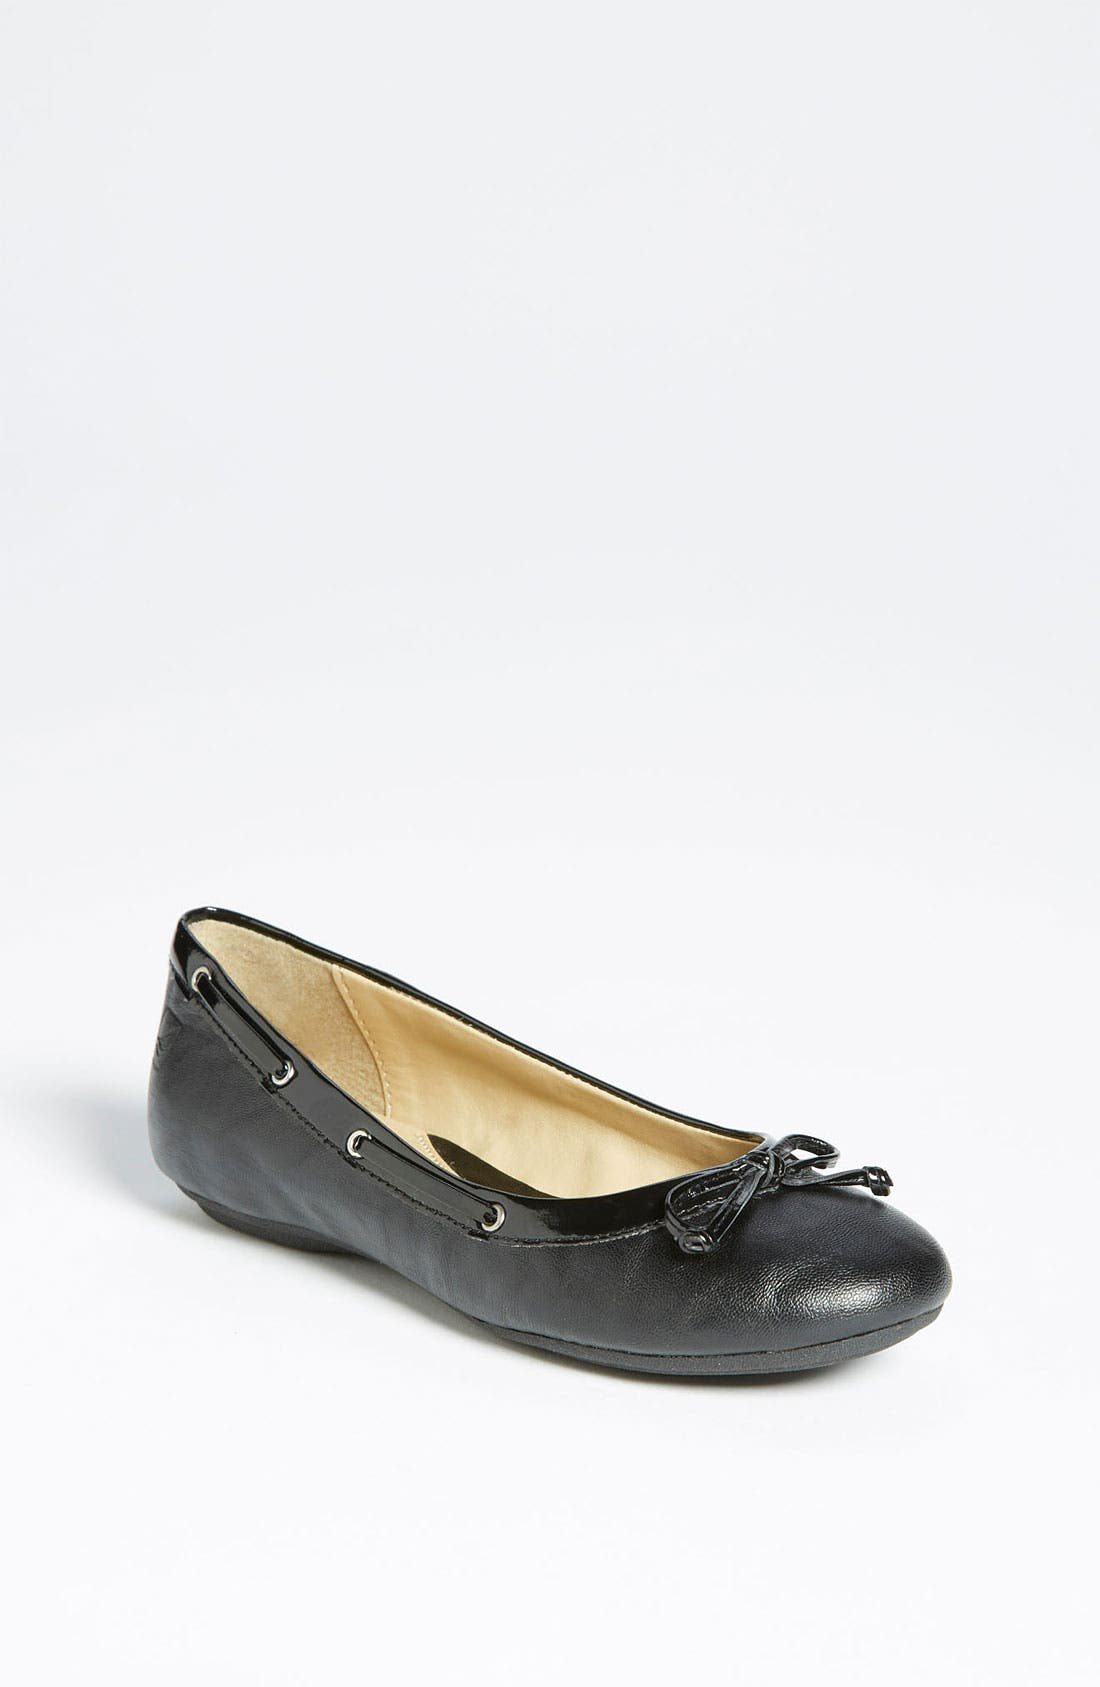 Alternate Image 1 Selected - Sperry Kids 'Marina' Flat (Online Only) (Toddler, Little Kid & Big Kid)